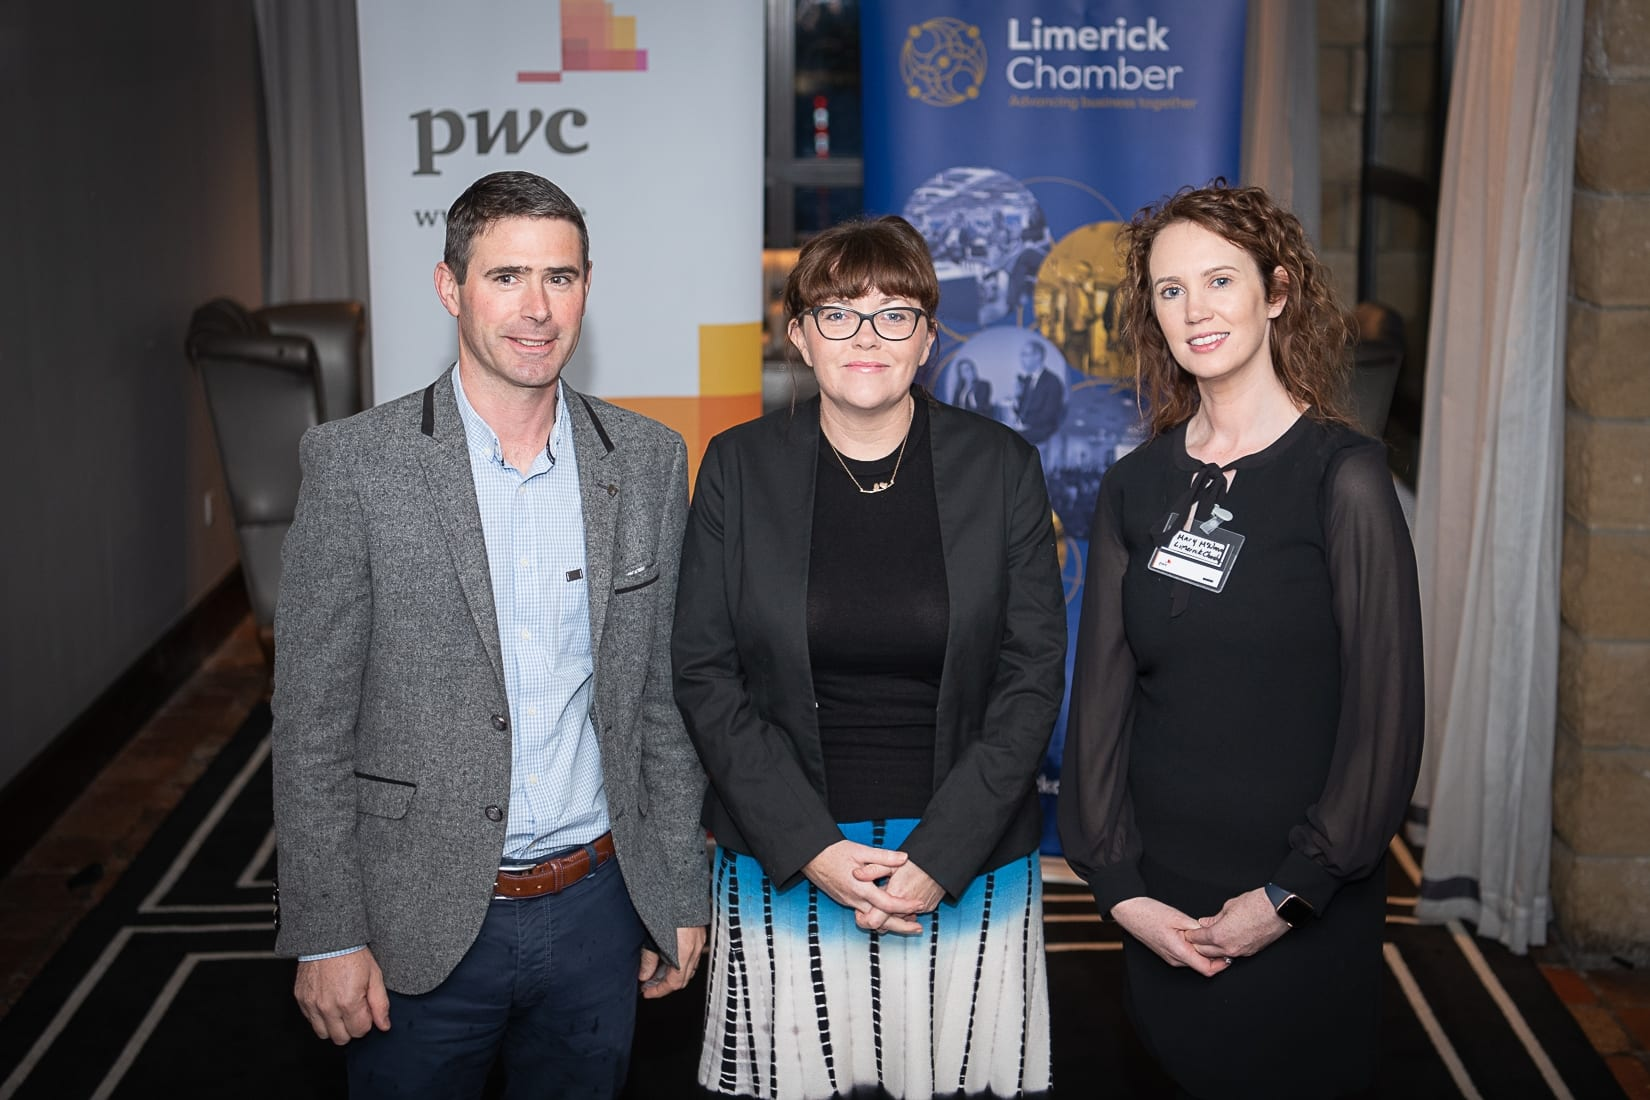 PWC Budget Breakfast in association with the Limerick Chamber which took place in the Castletroy Park Hotel on 9th October 2019, from left to right: Donnacha Dowling - Magellan Aviation Group, Elaine Ryan - Clayton Hotel, Mary McNamee- Limerick Chamber.   Photo by Morning Star Photography